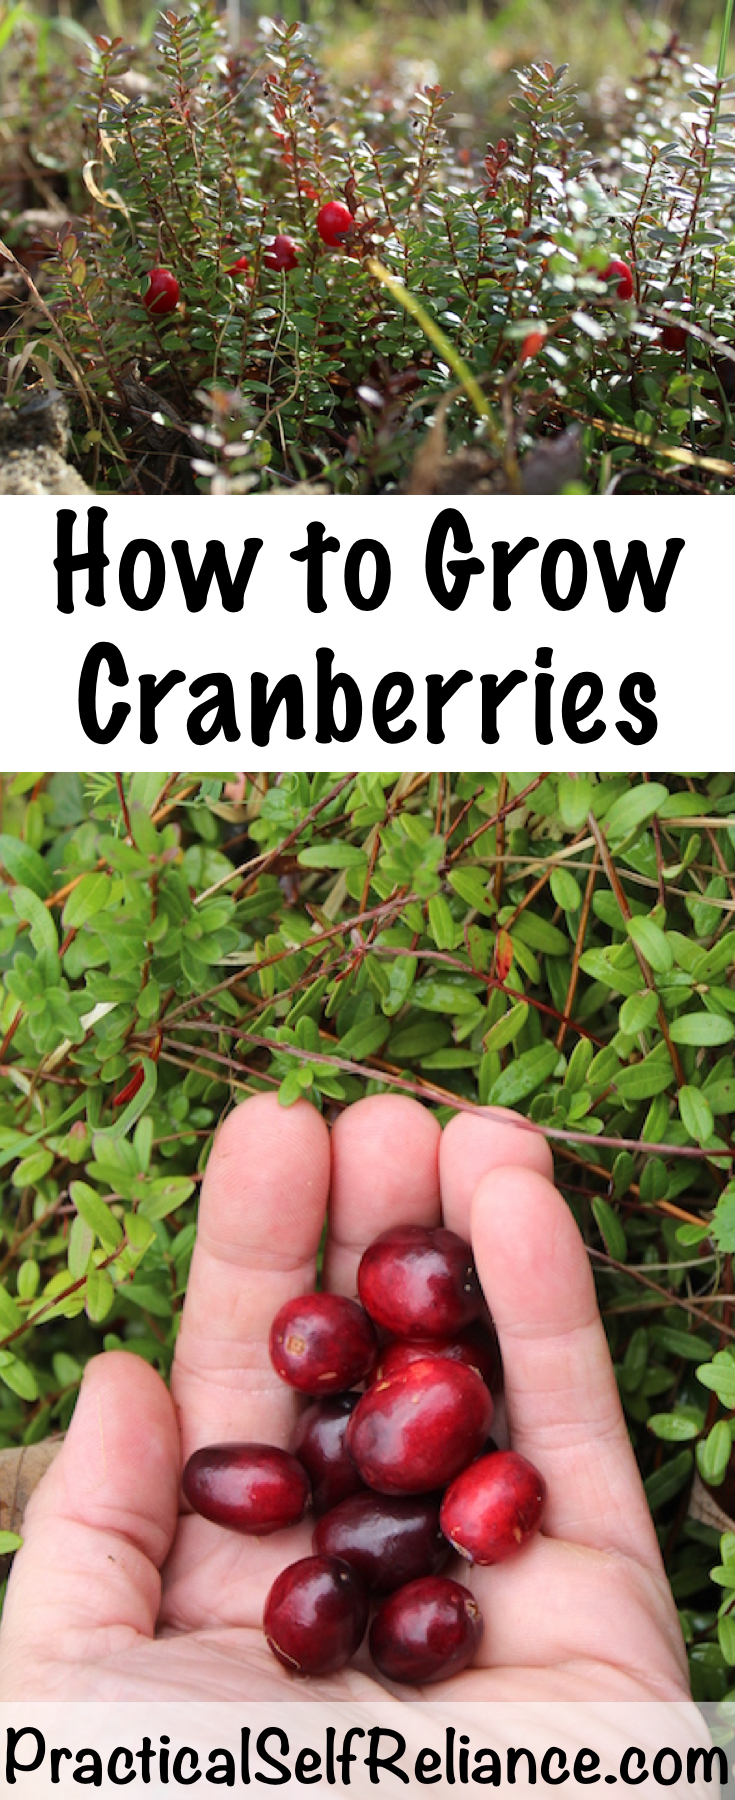 How to Grow Cranberries